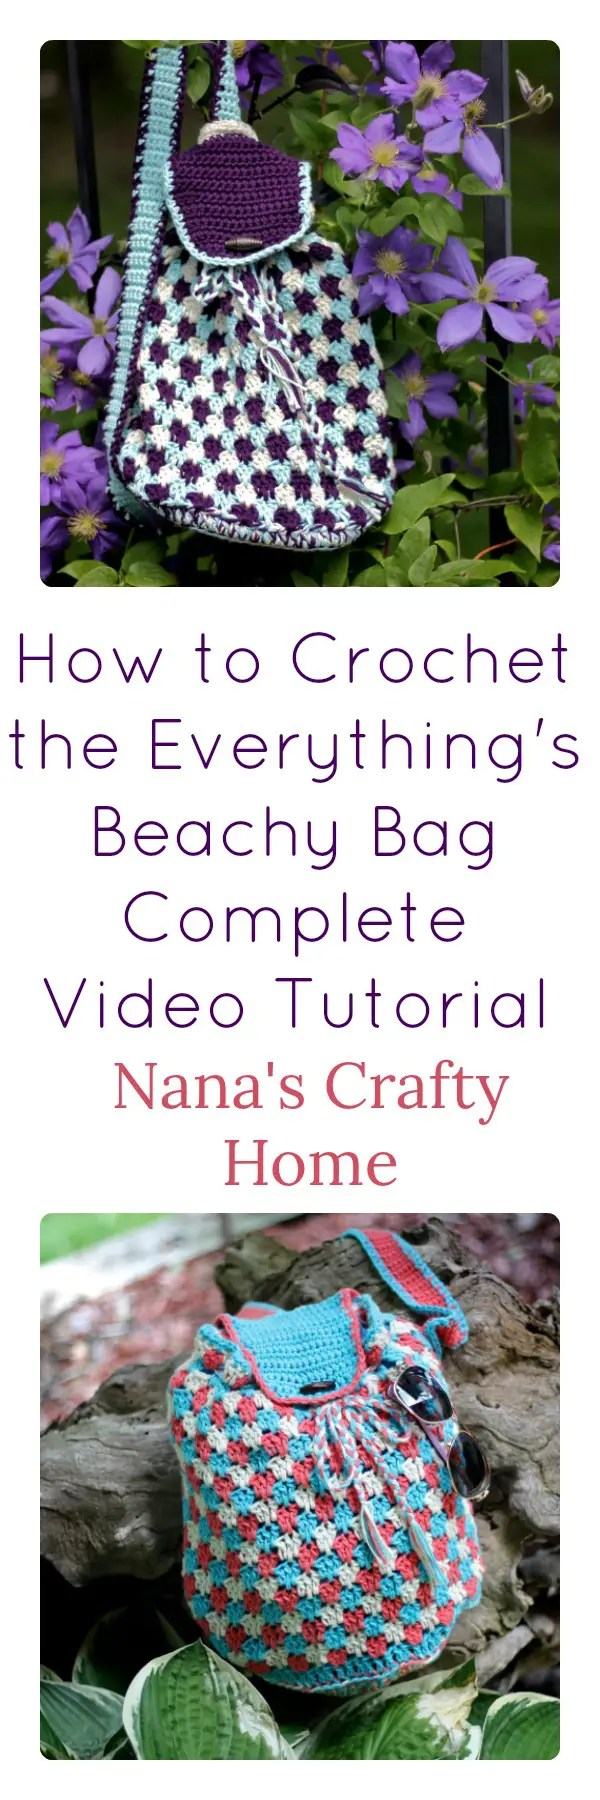 How to Crochet the Everything\'s Beachy Bag Video Tutorial a free pattern